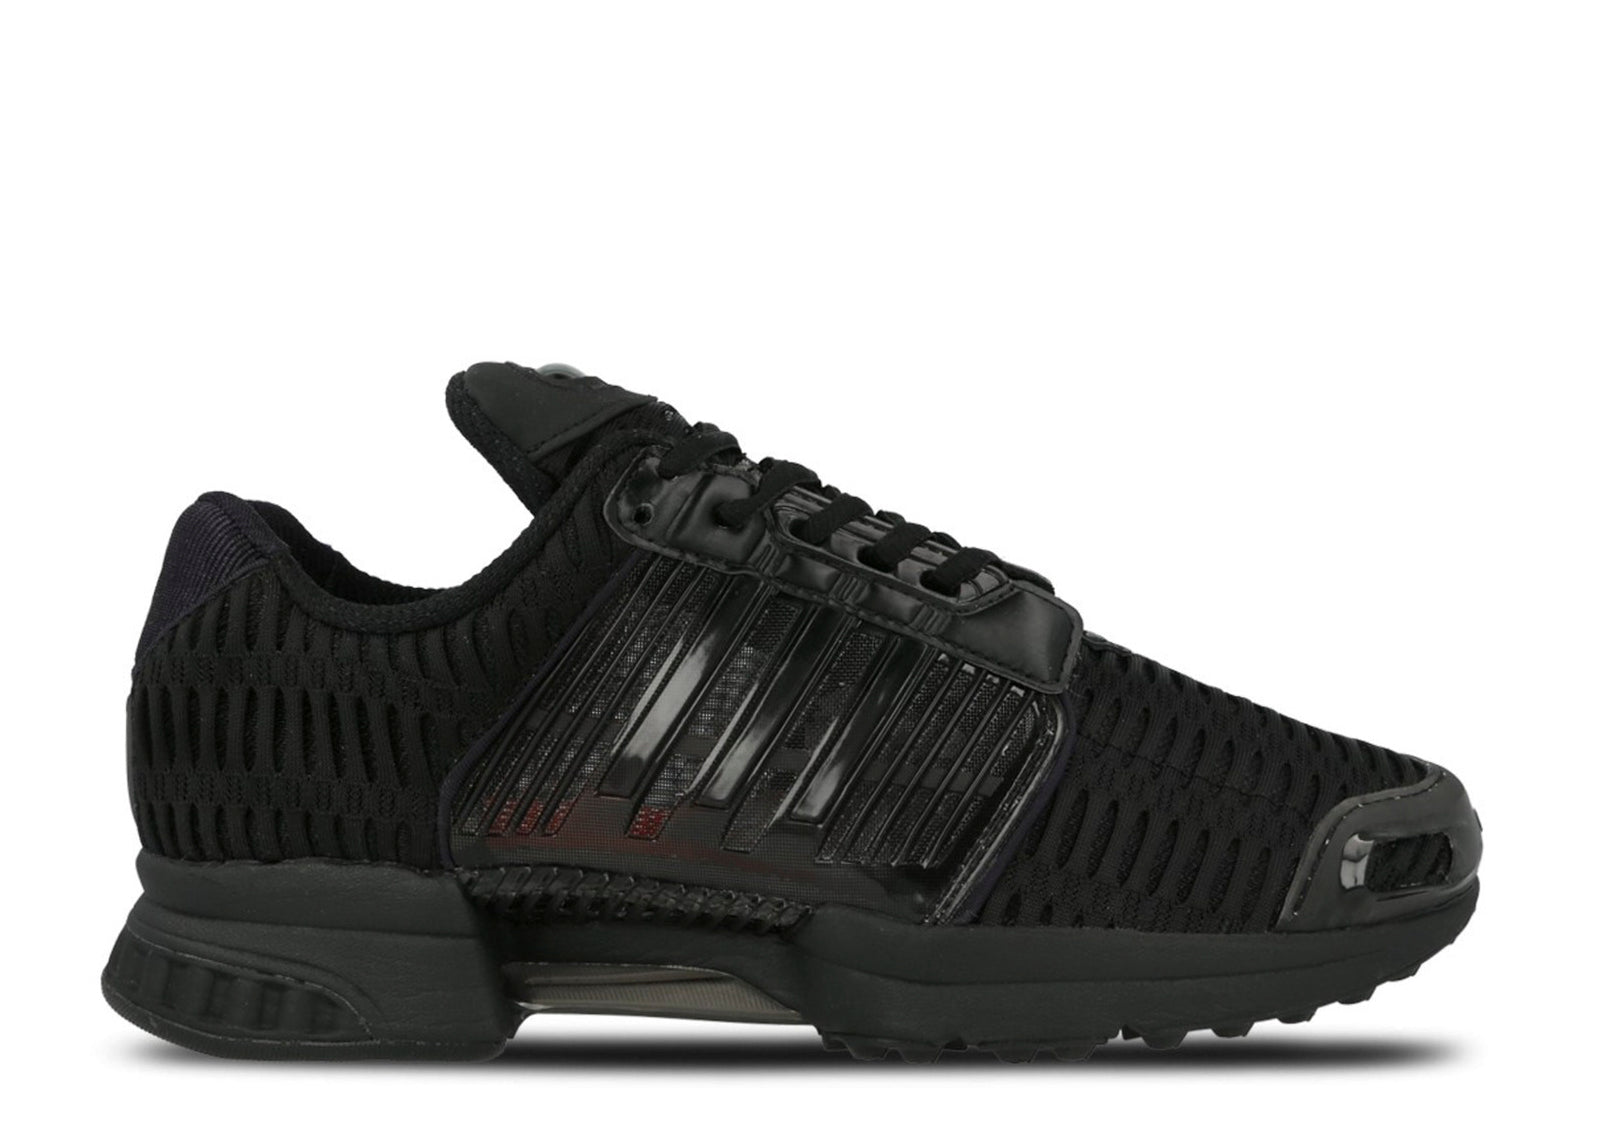 low cost c01dd ef641 ADIDAS CLIMACOOL GALLERY FLIGHT 305